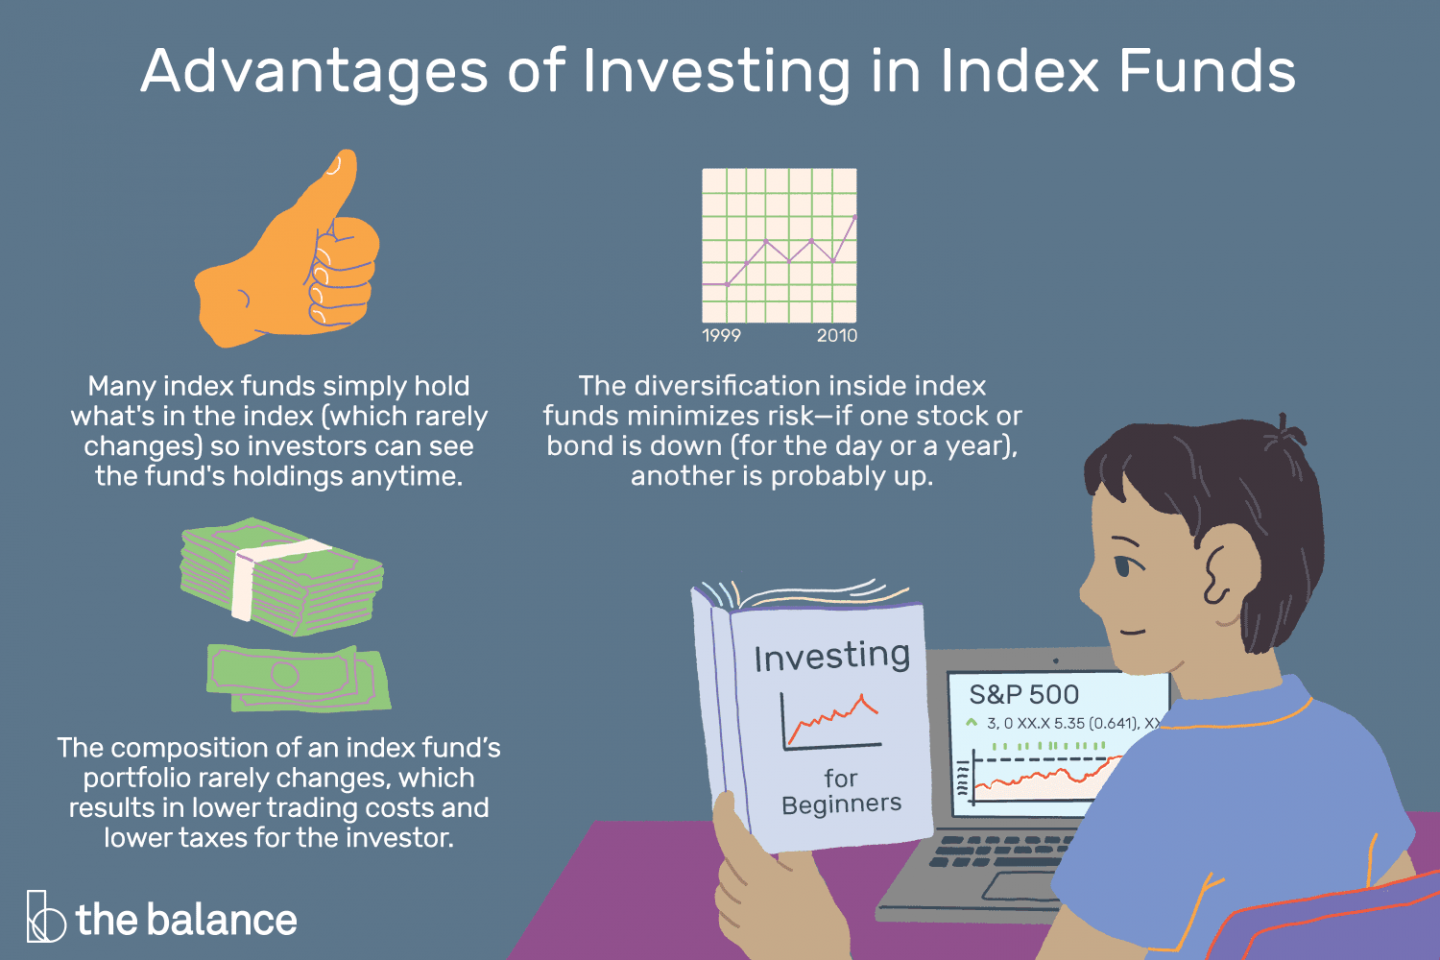 https://www.thebalance.com/investing-in-index-funds-for-beginners-356318